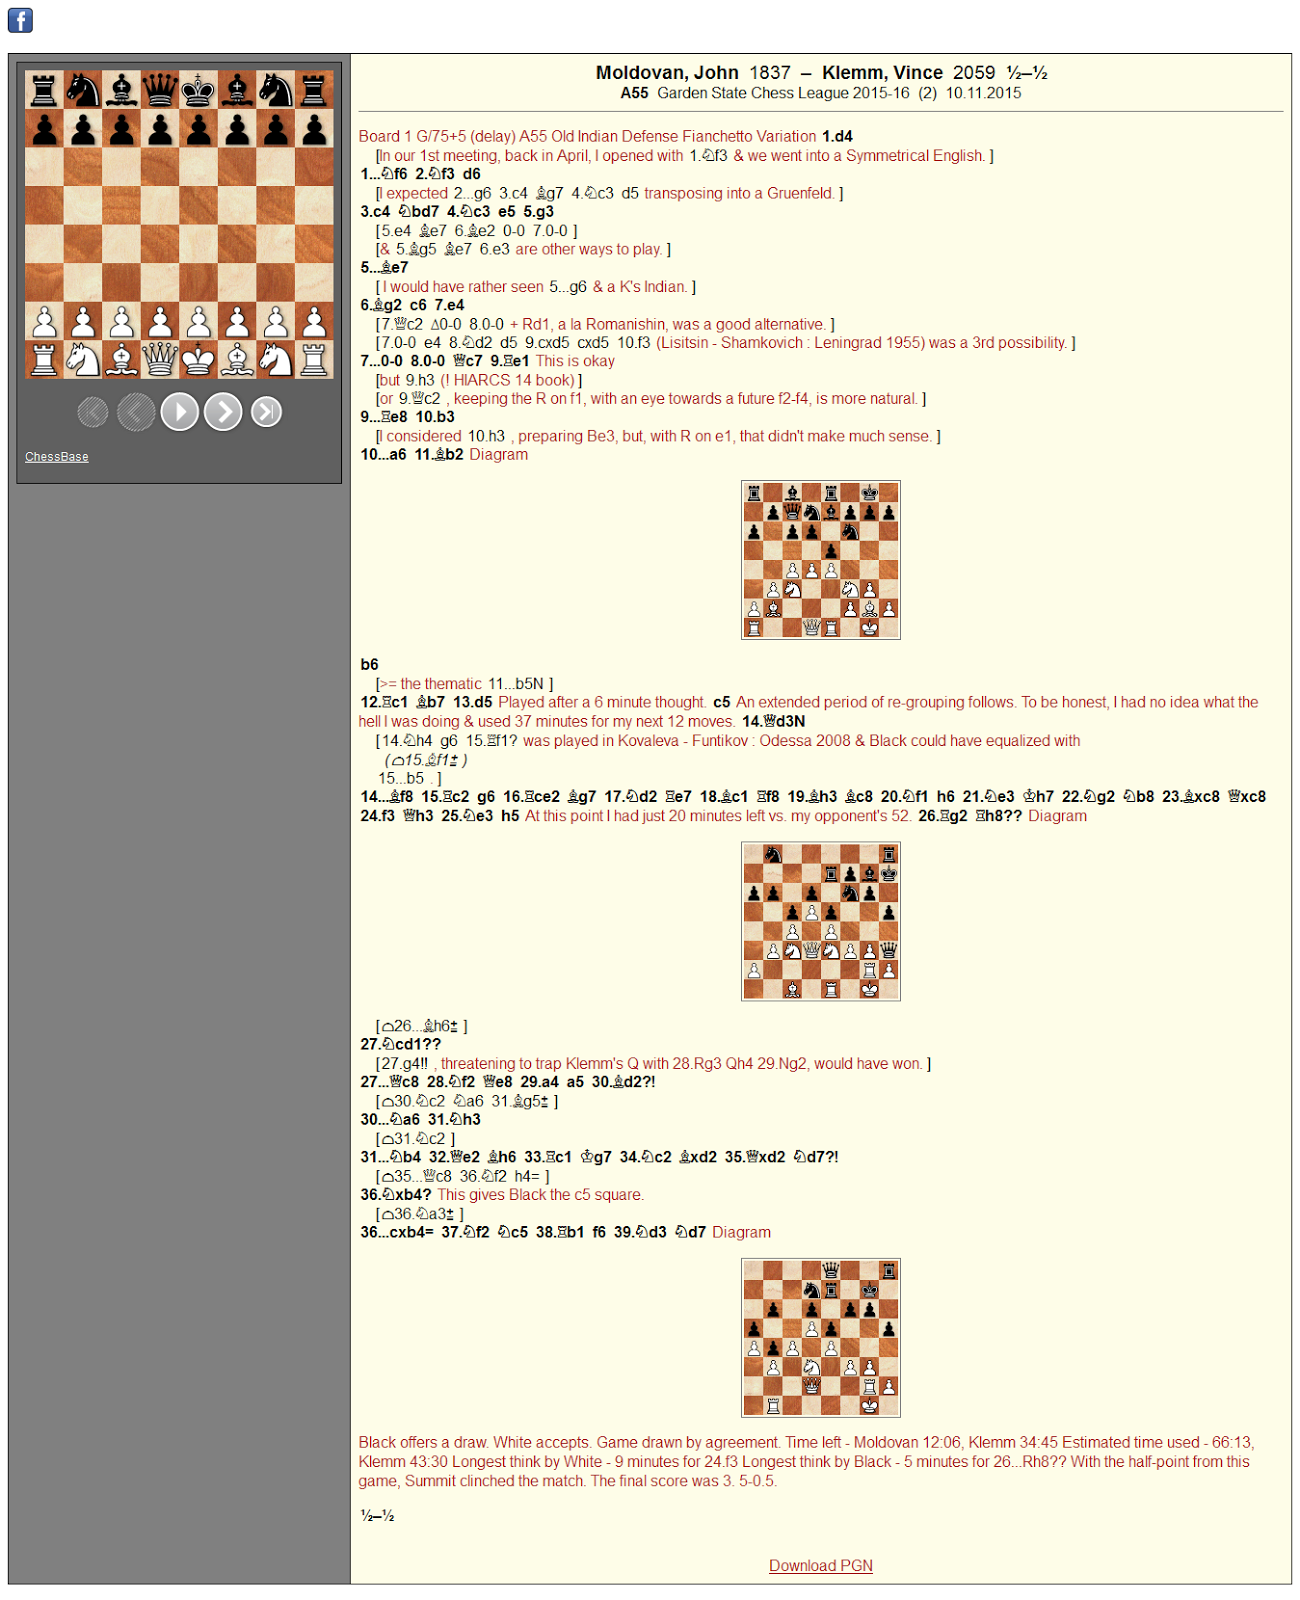 Garden State Chess League: Annotated Game